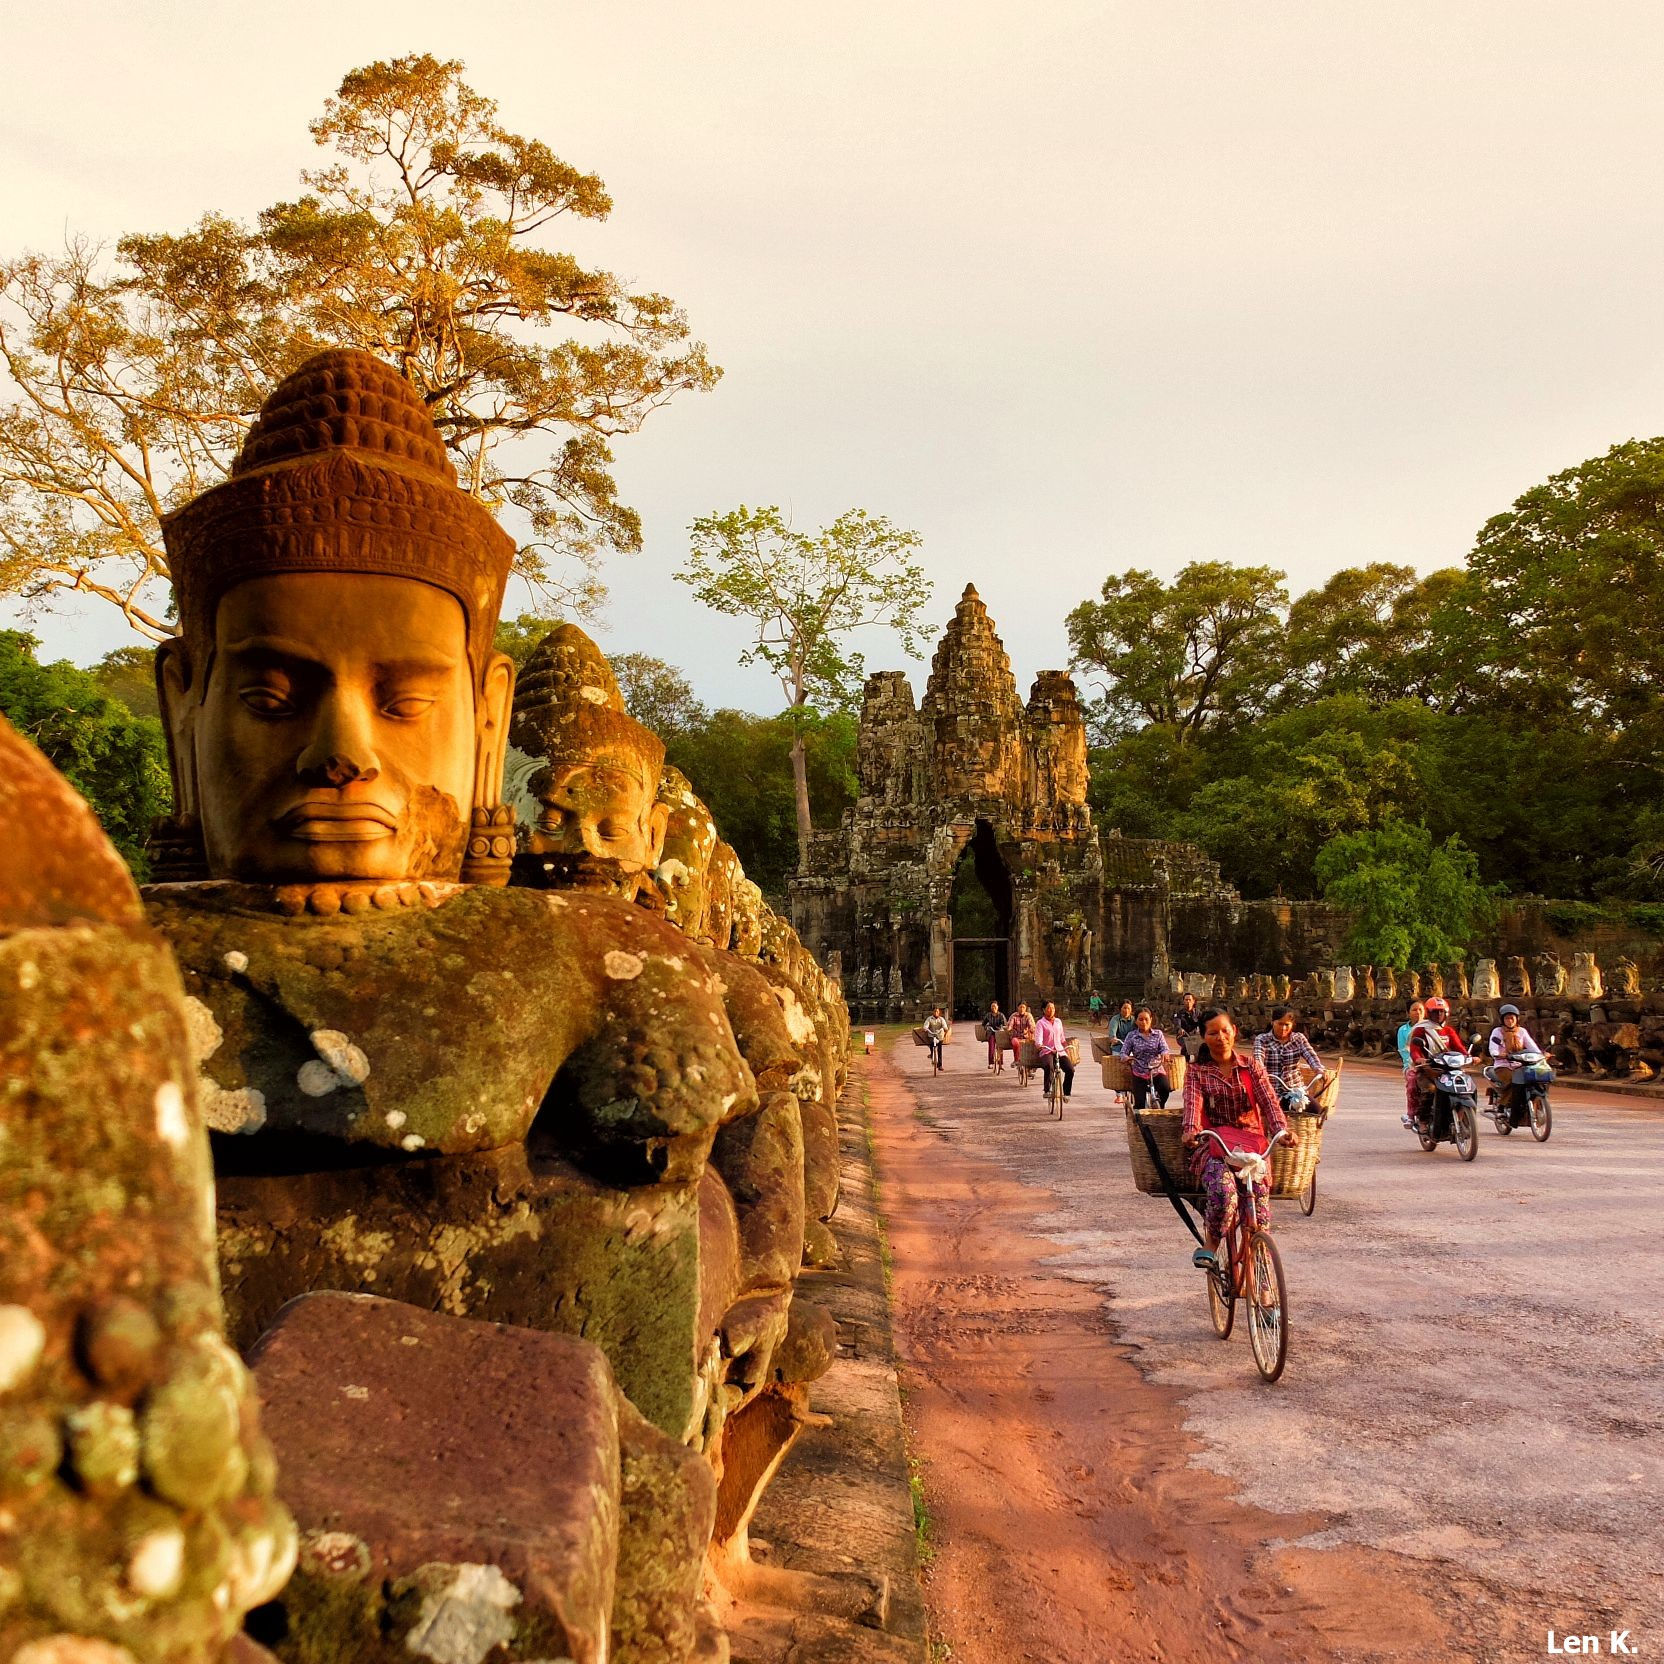 On the road to Angkor Thom